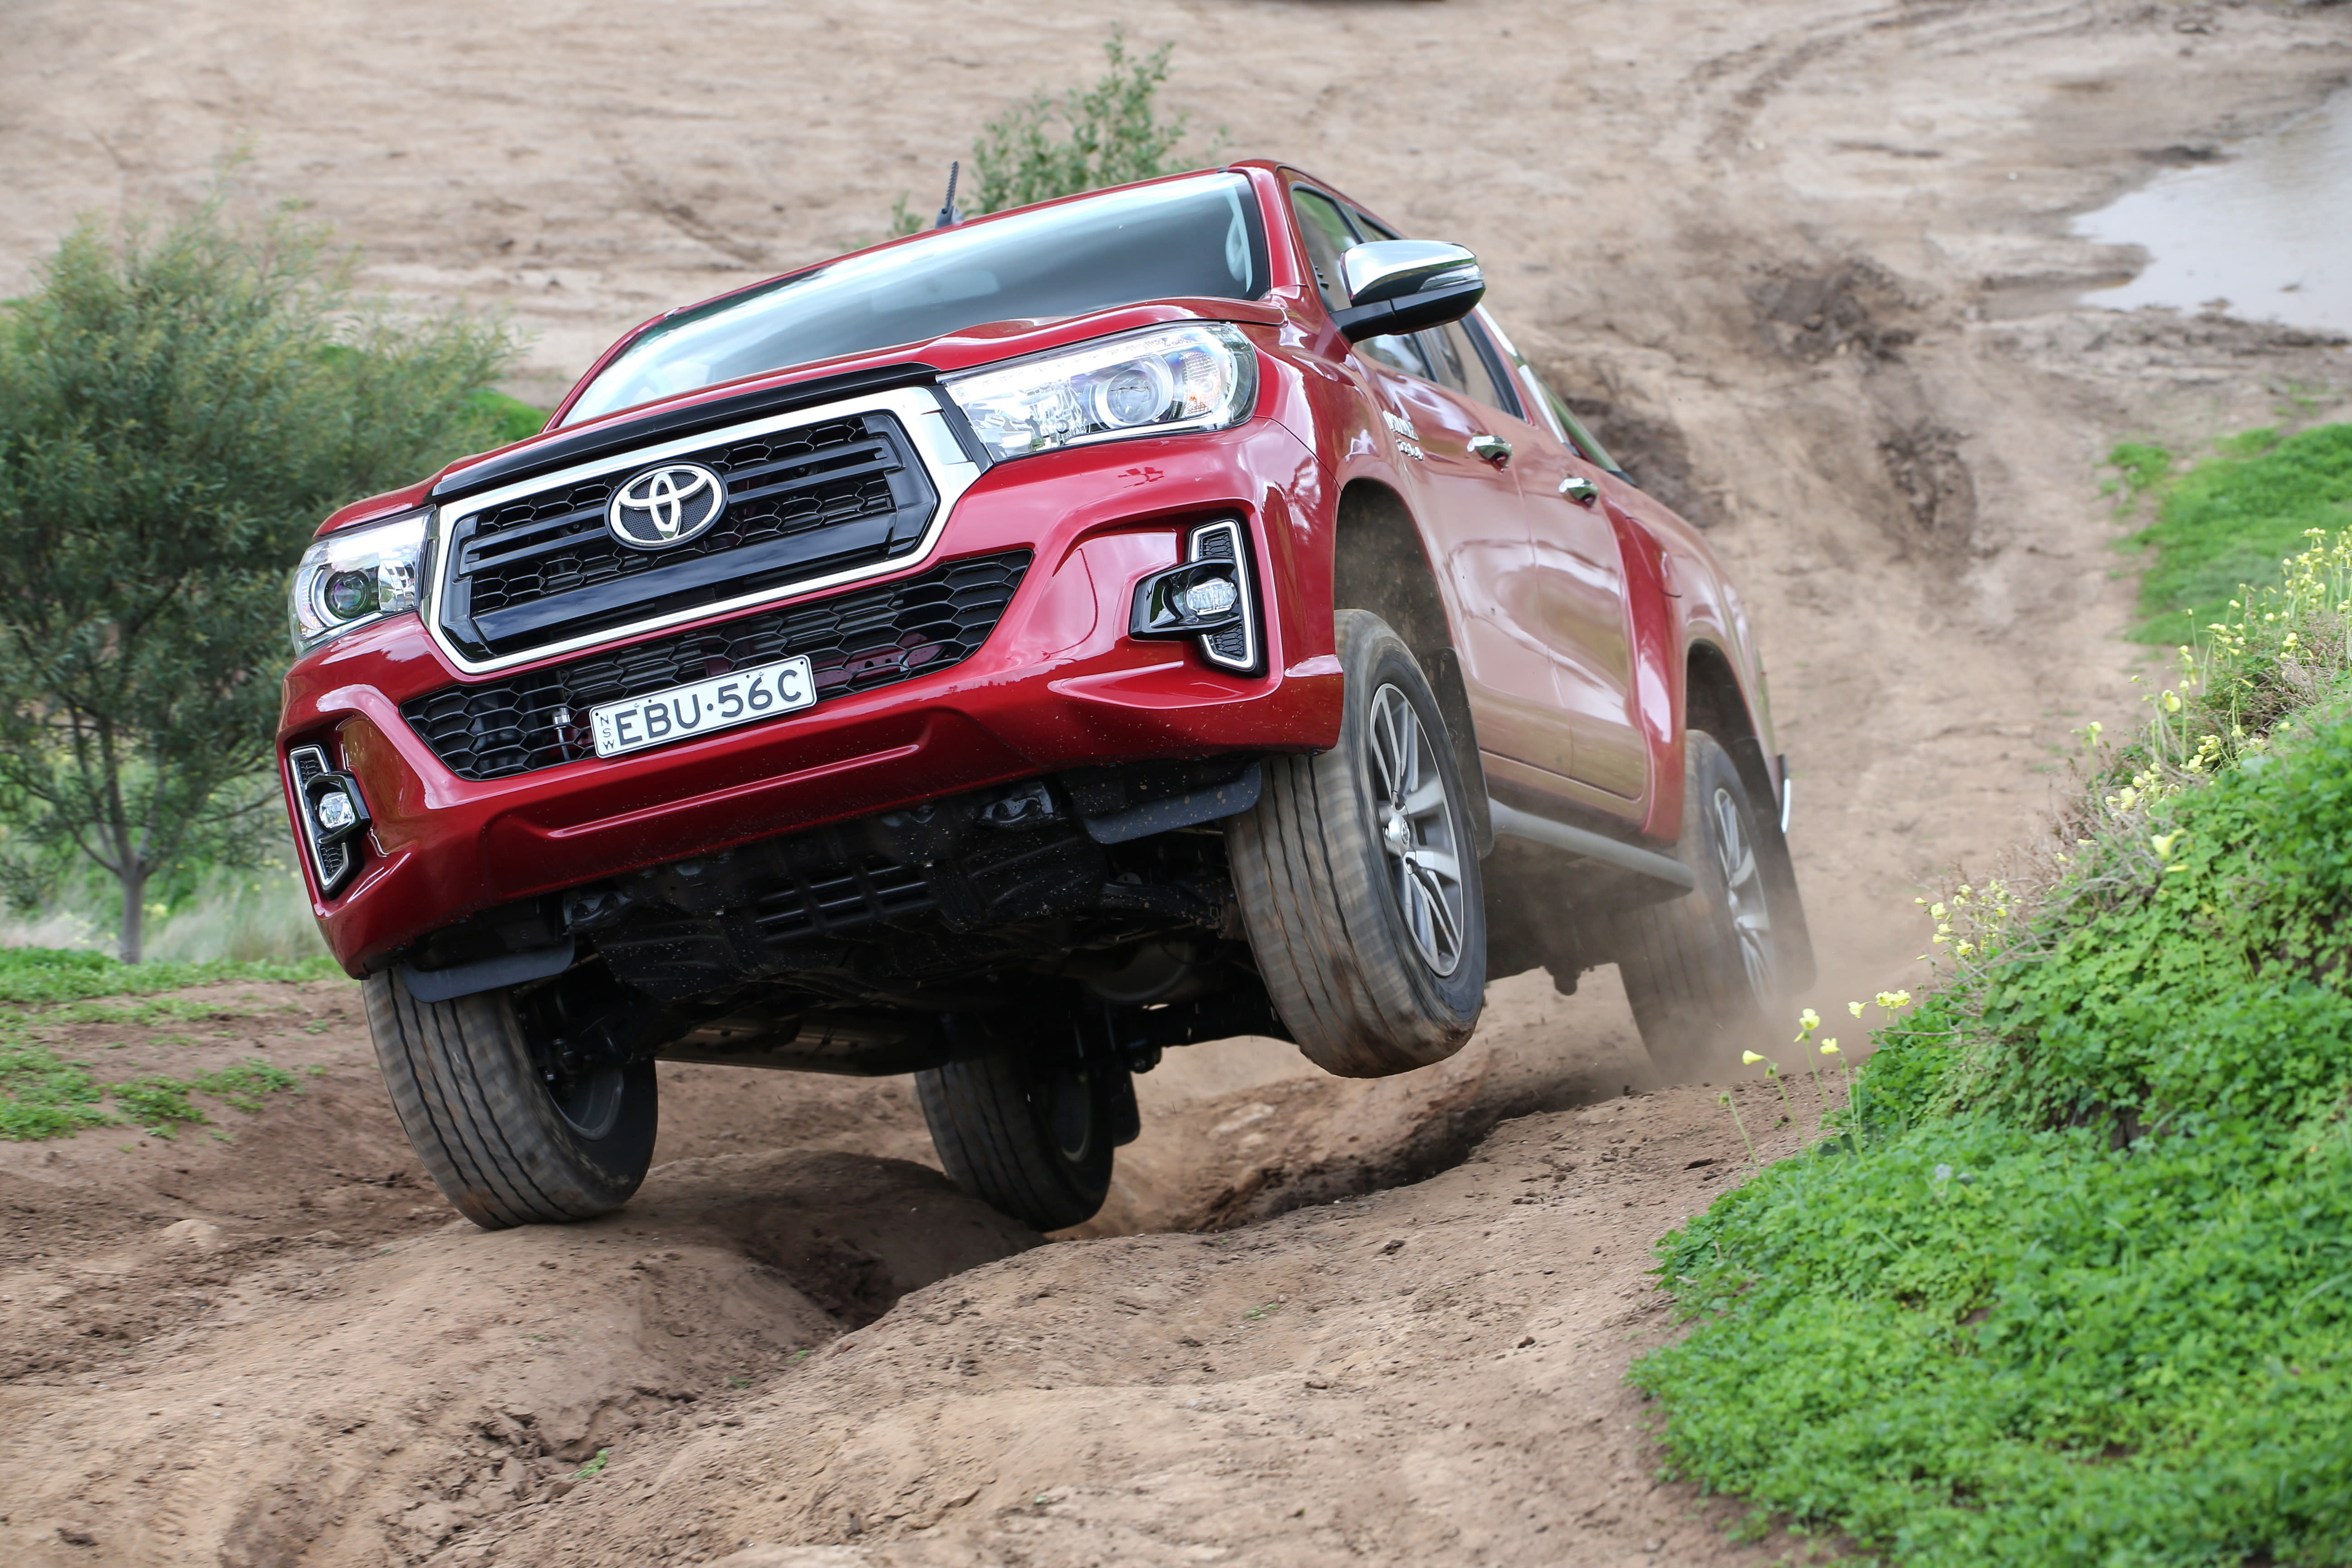 Updated Toyota HiLux due in July, 2.8 turbo diesel likely to get a power boost